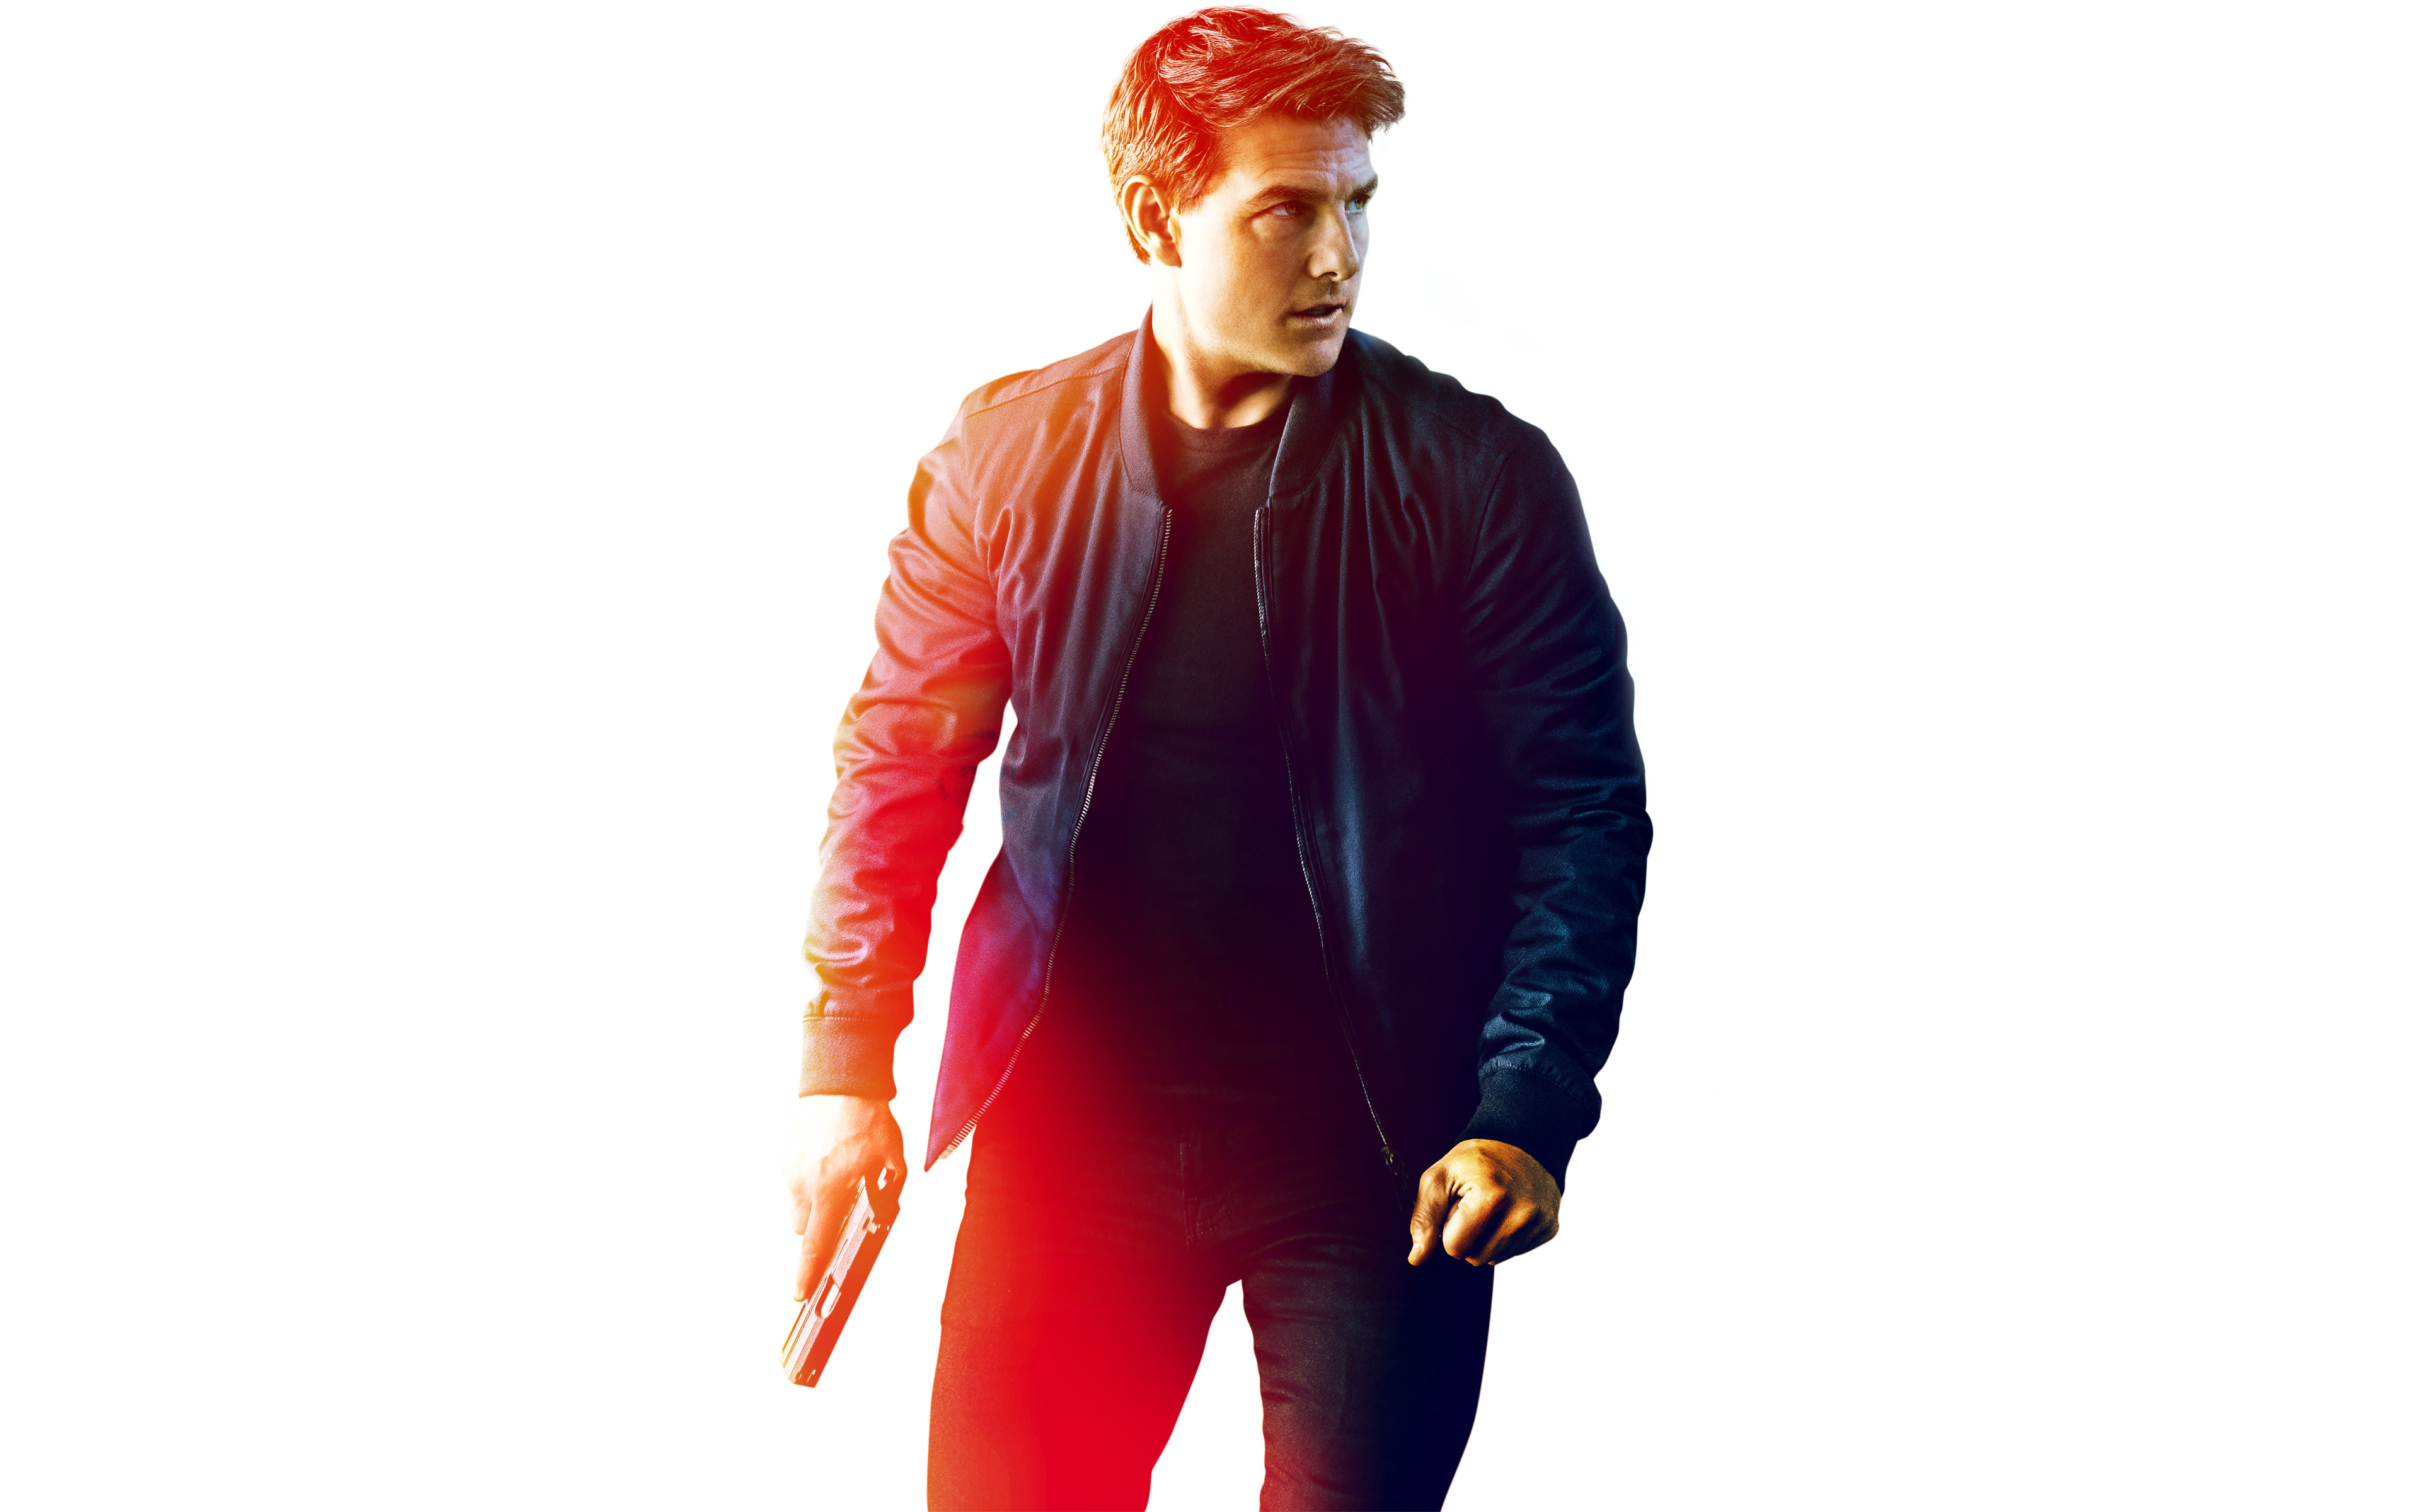 tom_cruise_in_mission_impossible_fallout_4k_8k.jpg